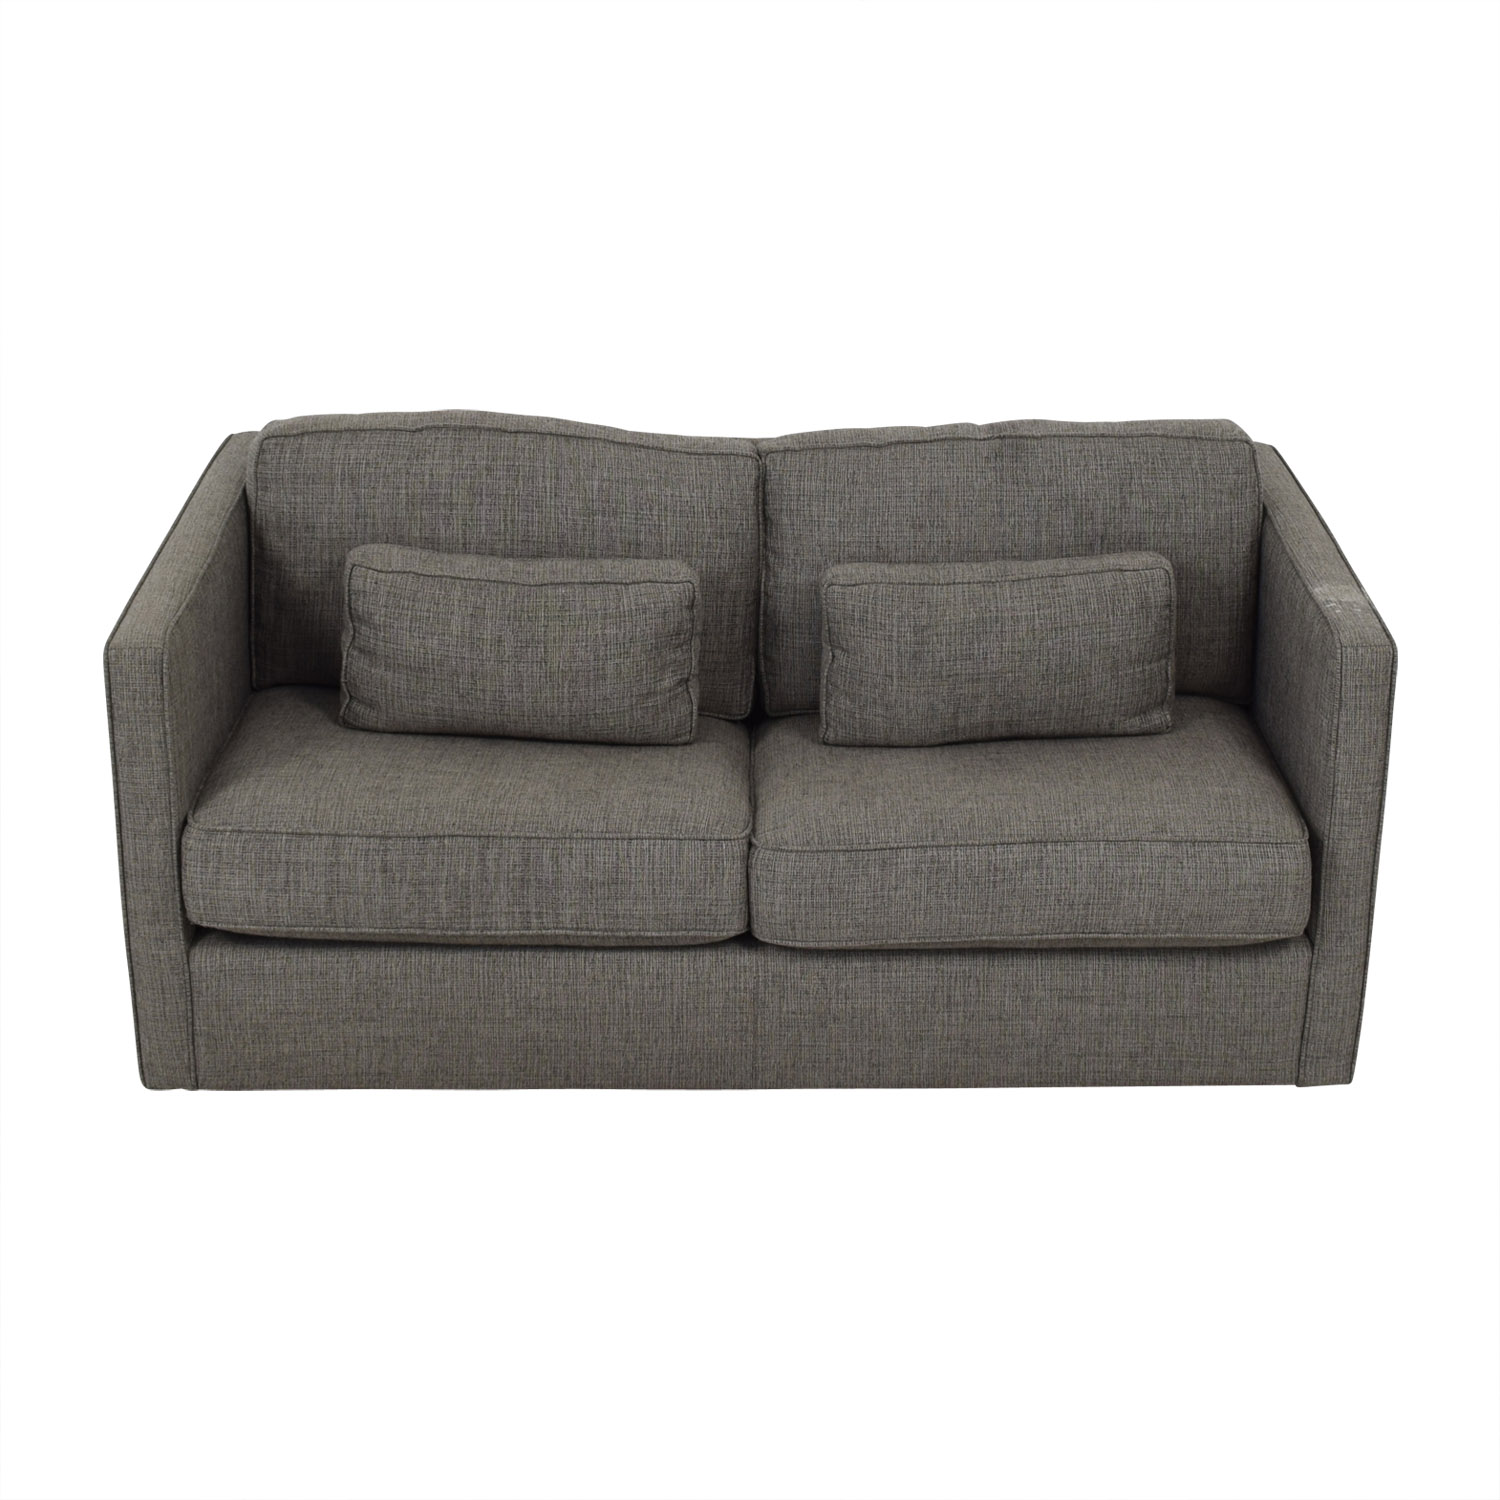 Room & Board Room & Board Gray Woven Full Sleeper Sofa for sale